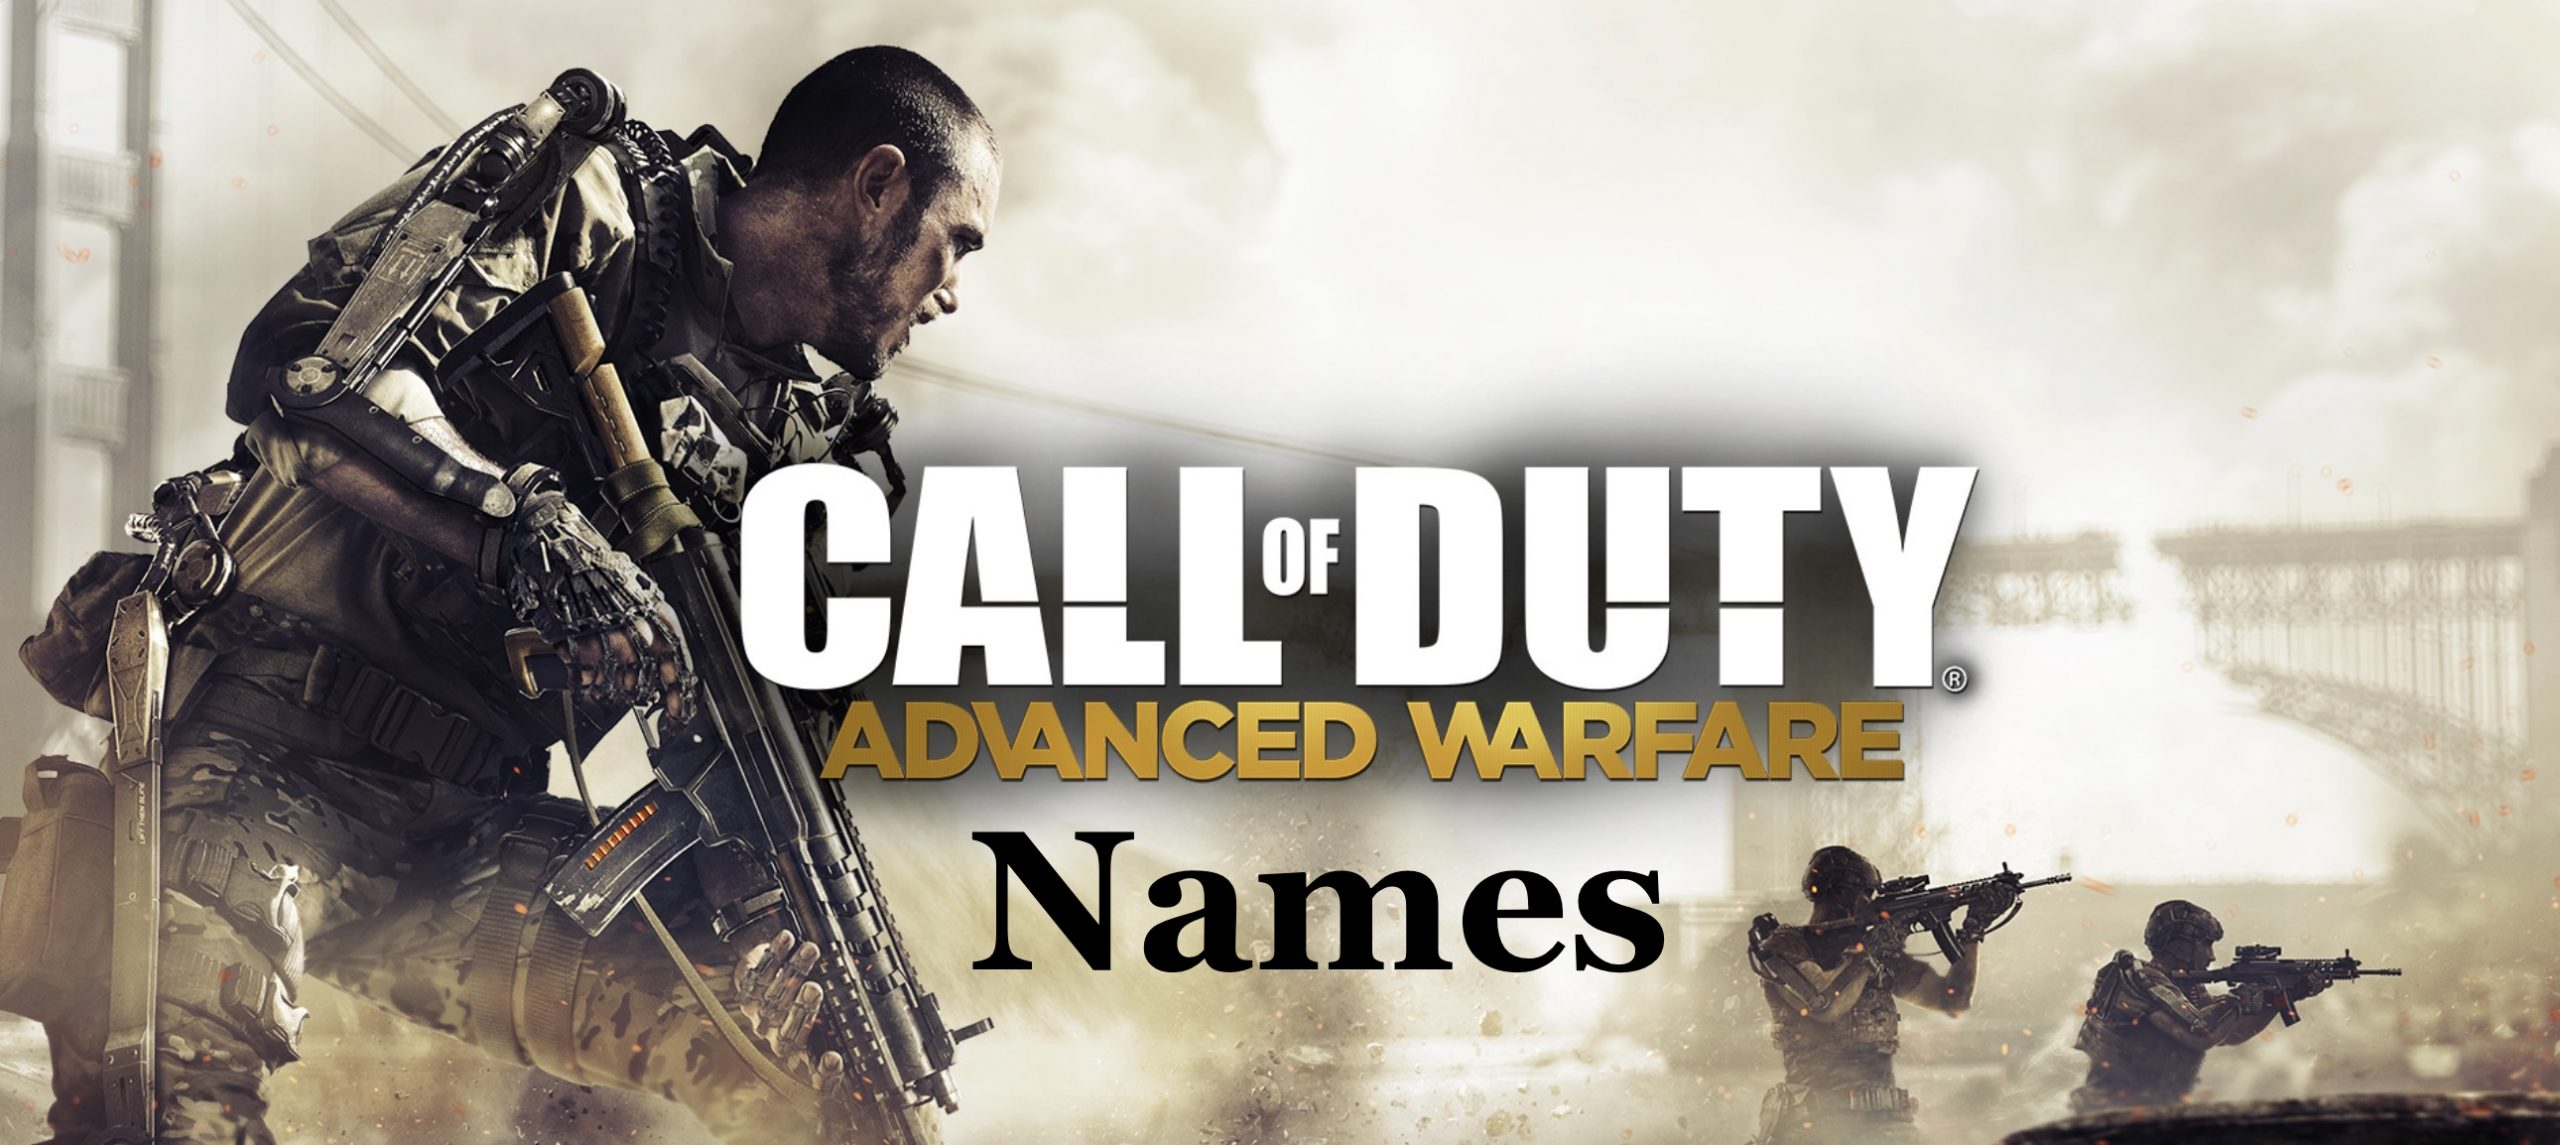 Tips for Finding the Best COD Names